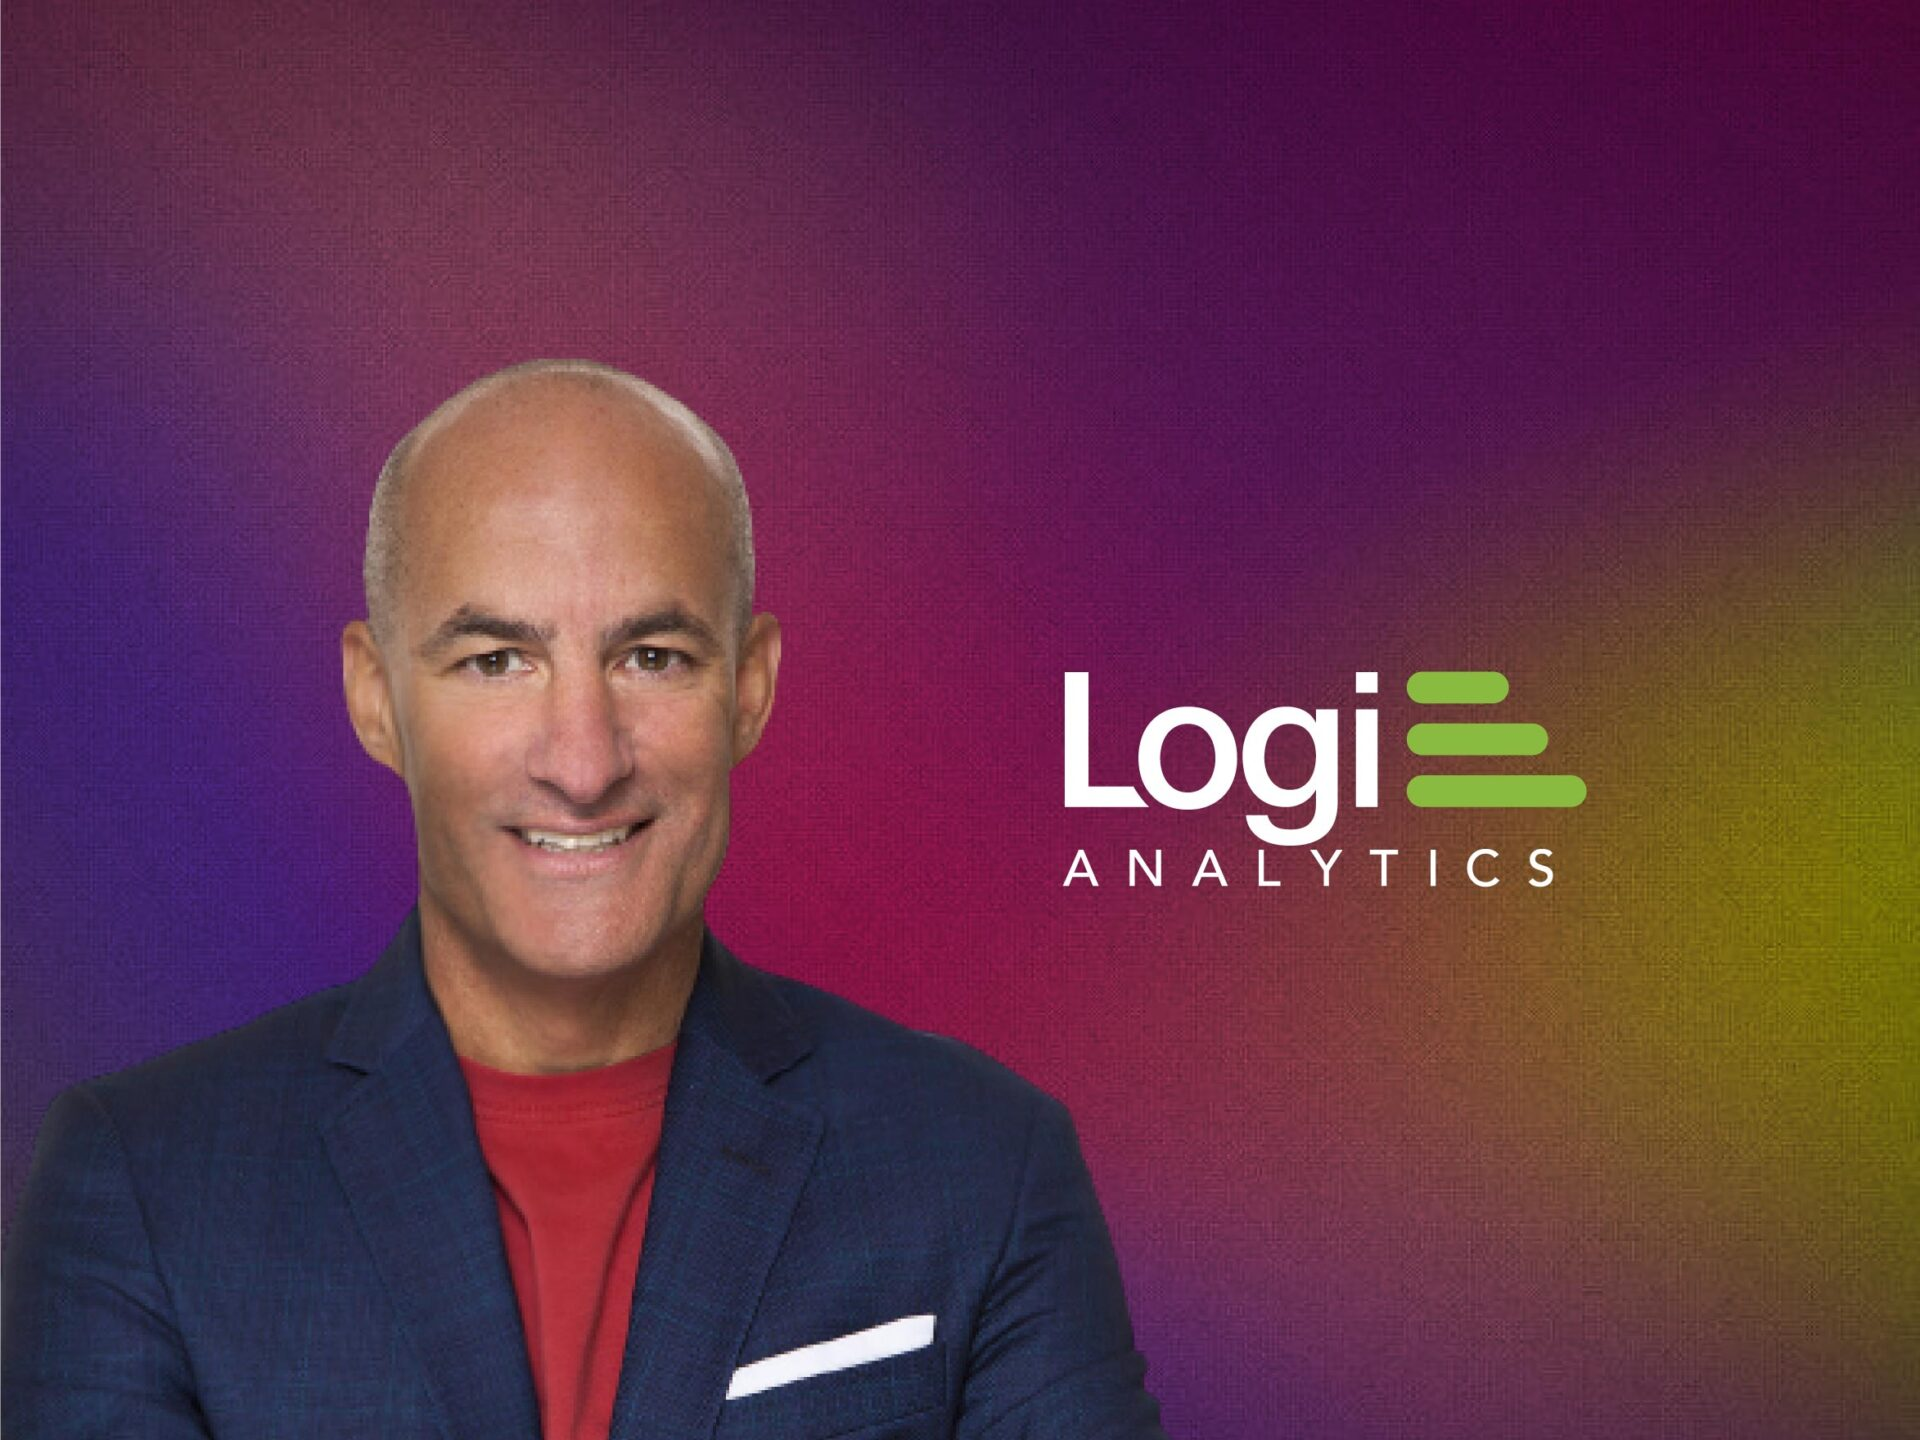 Global Fintech Interview with Jim Triandiflou, CEO at Logi Analytics / Insight Software